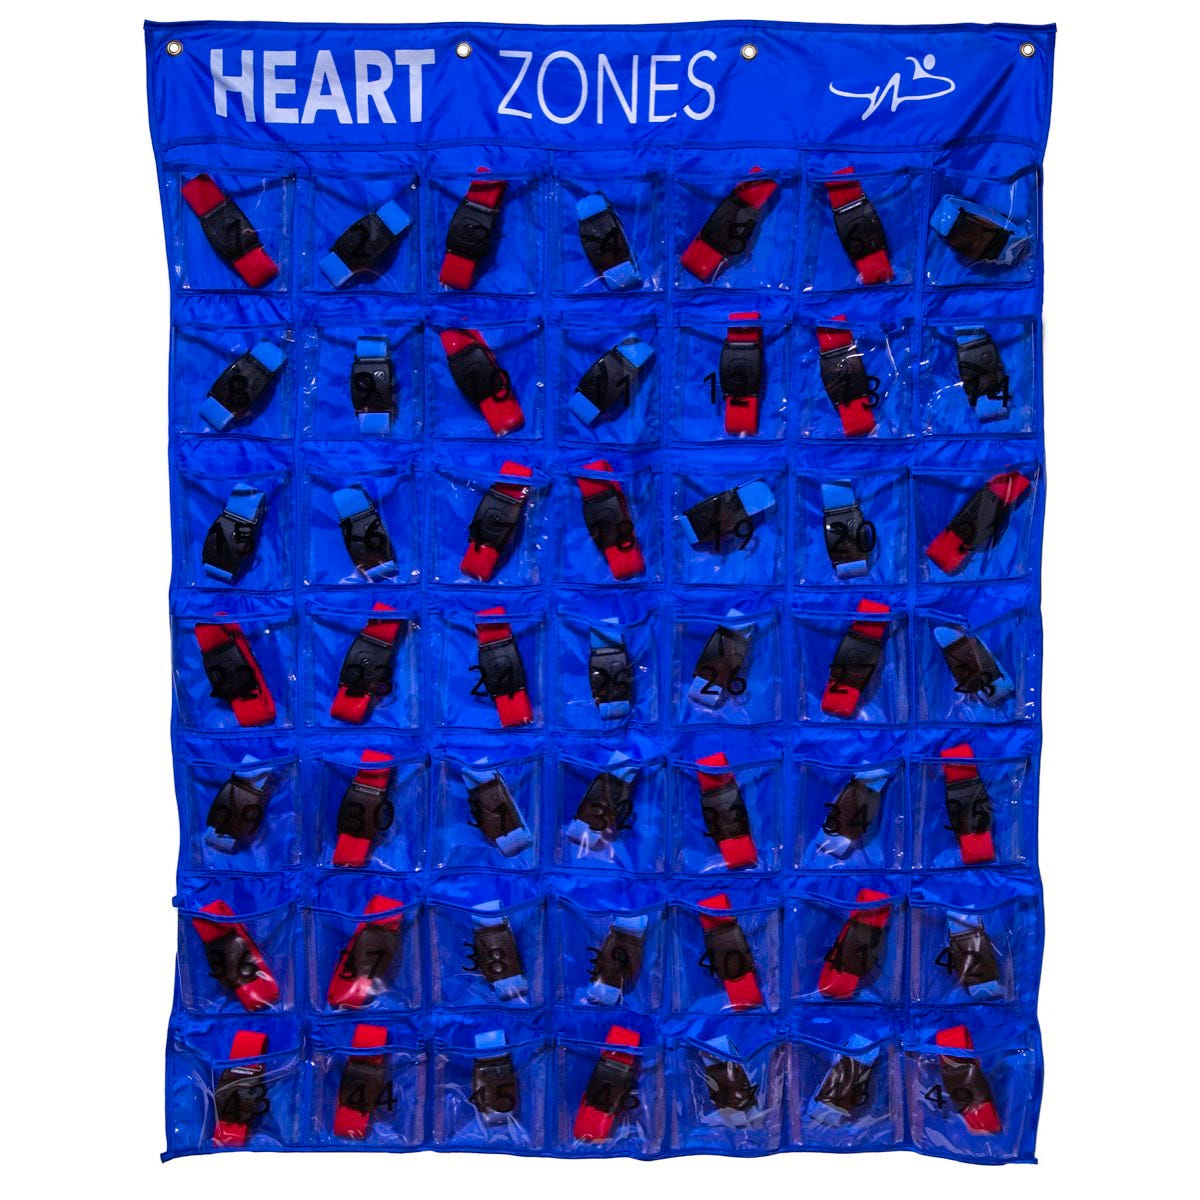 Heart Zones Hanging Charging Station 39